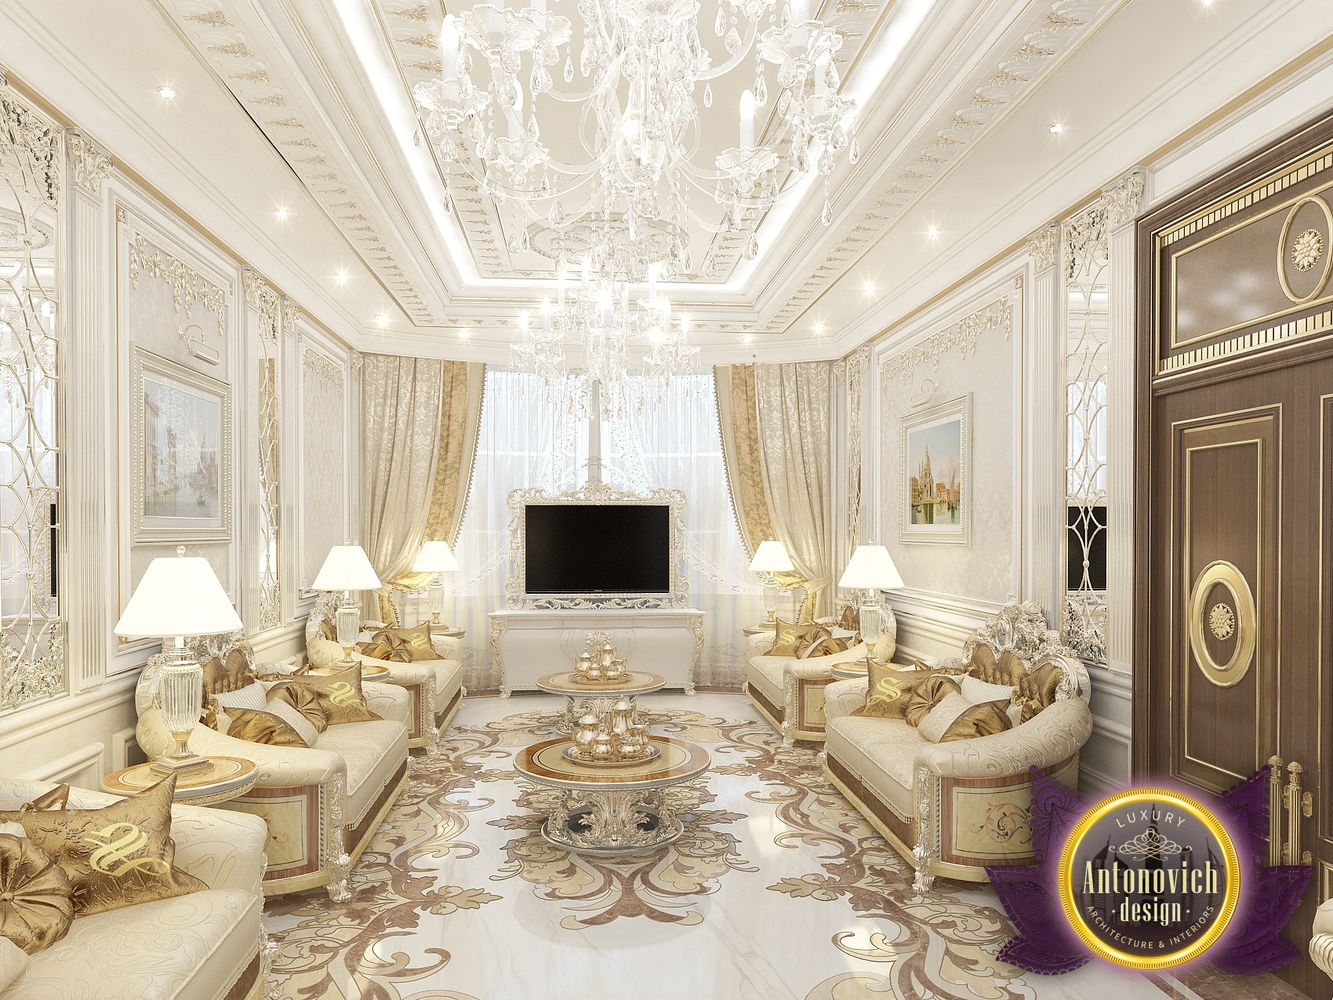 Luxury antonovich design uae living room interior design for Luxury home interior design